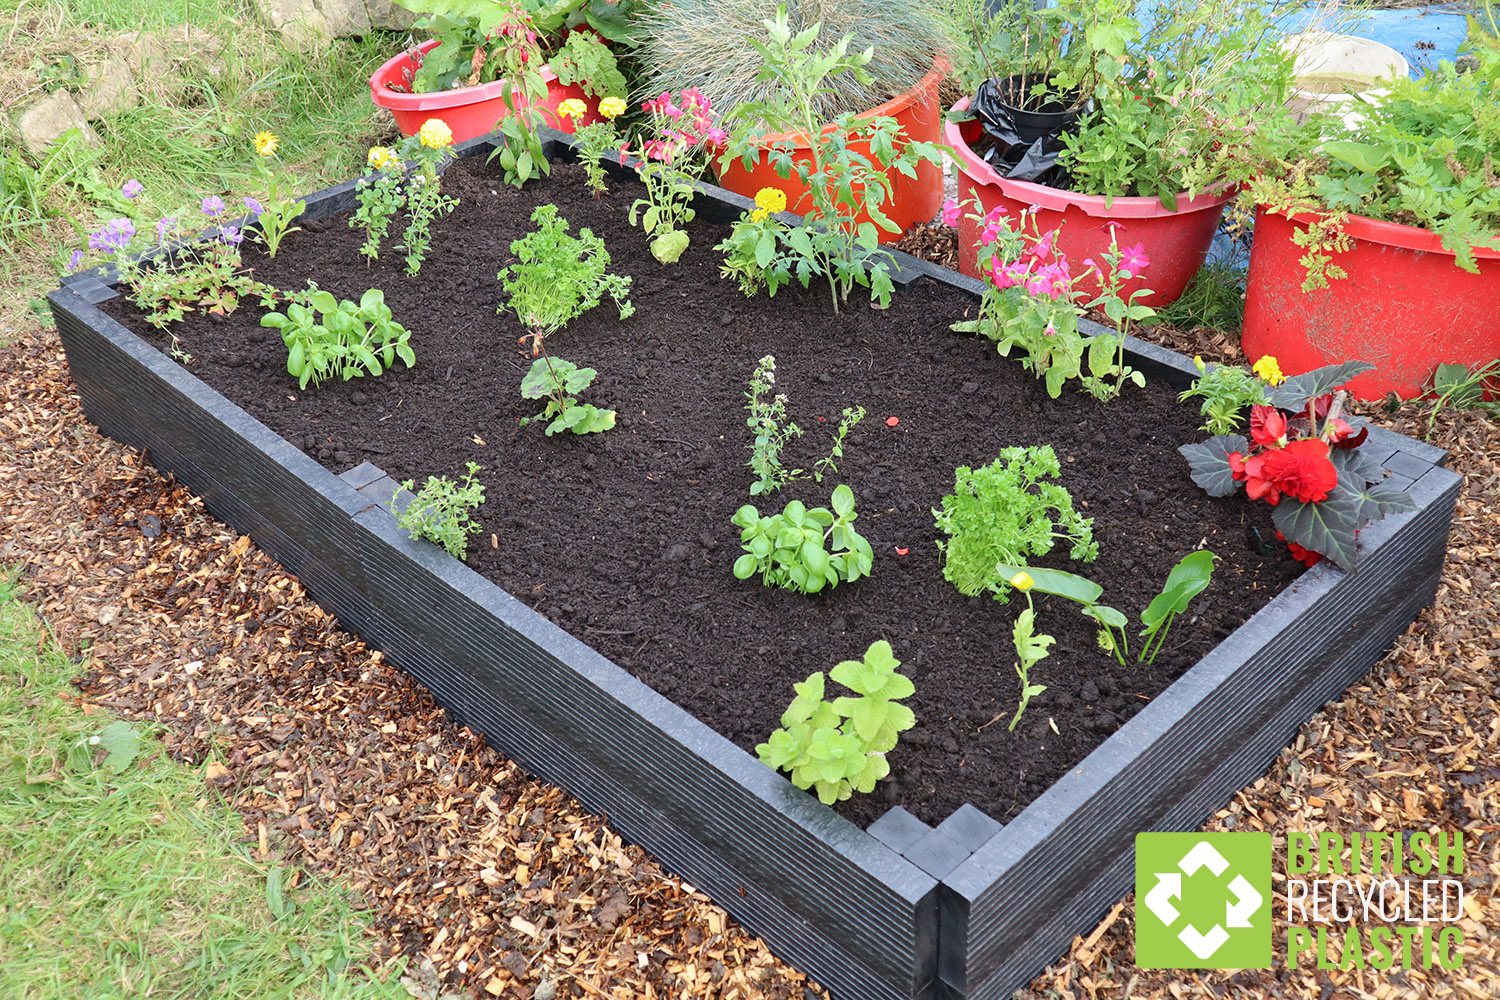 A 2 metre recycled plastic raised bed kit